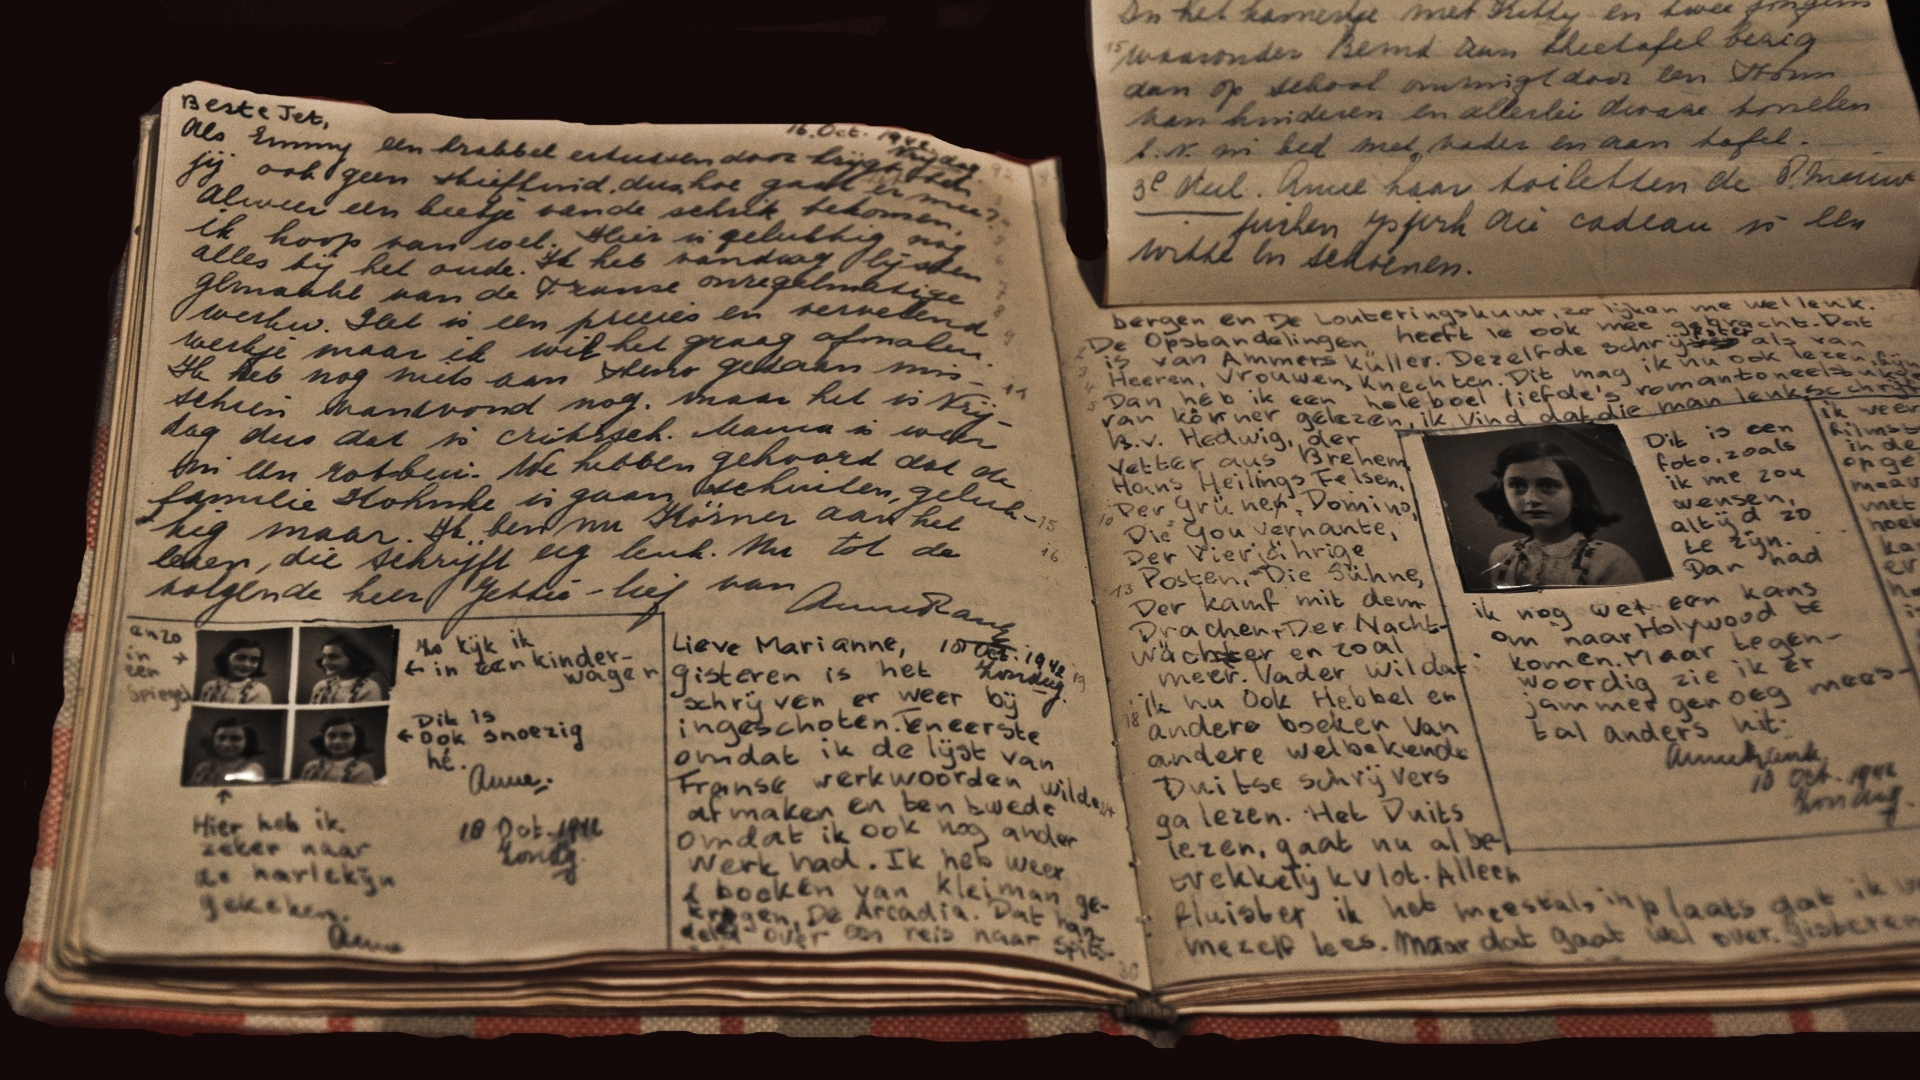 The diary of Anne Frank. Found in the collection of Anne Frank House Museum, Amsterdam.Fine Art Images/Heritage Images/Getty Images)